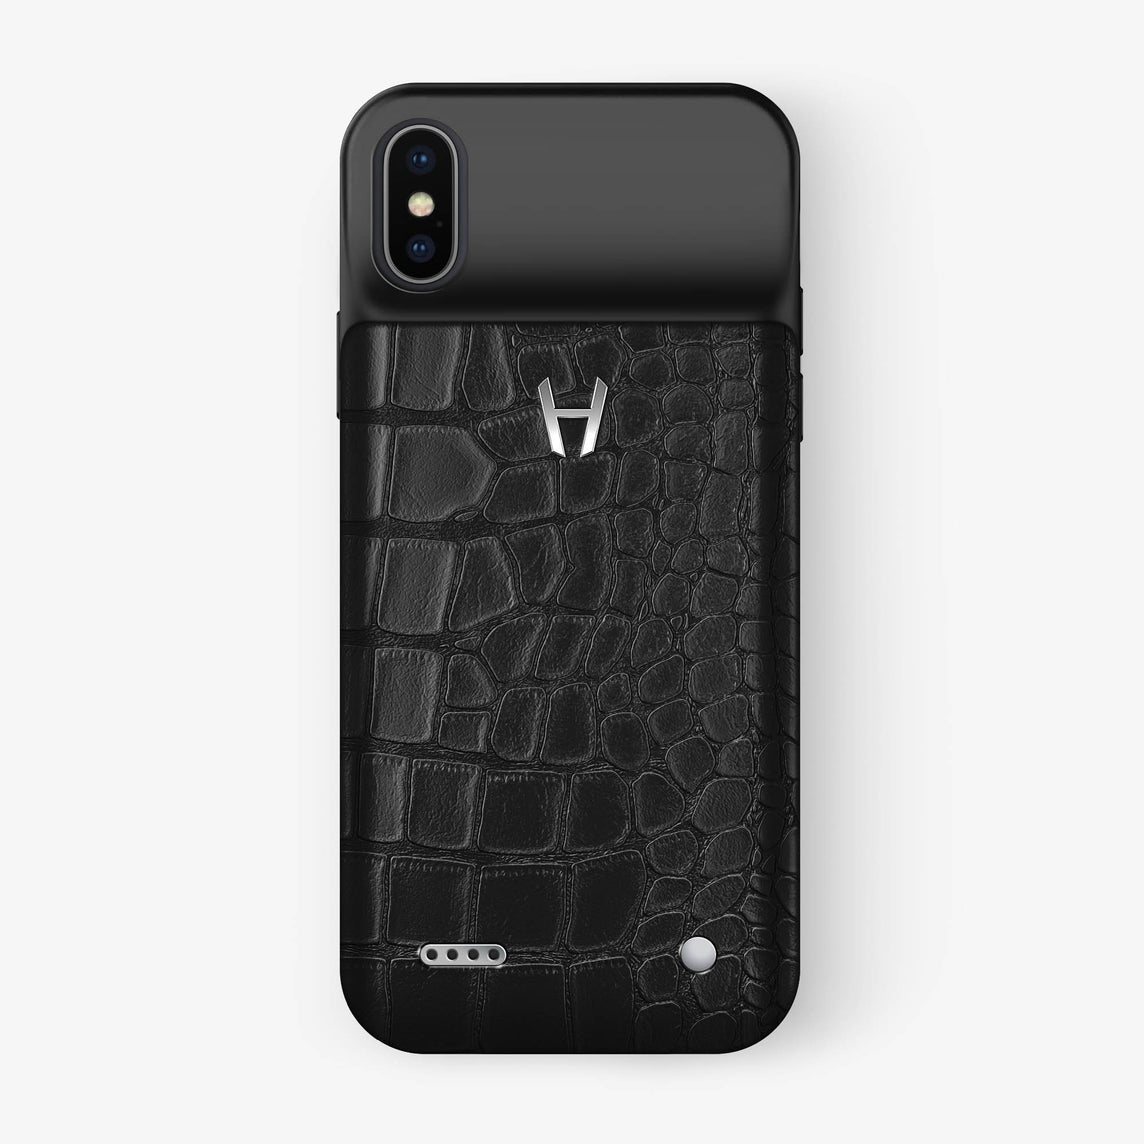 Alligator [iPhone Battery Case] [model:iphone-x-case] [colour:black] [finishing:stainless-steel] - Hadoro